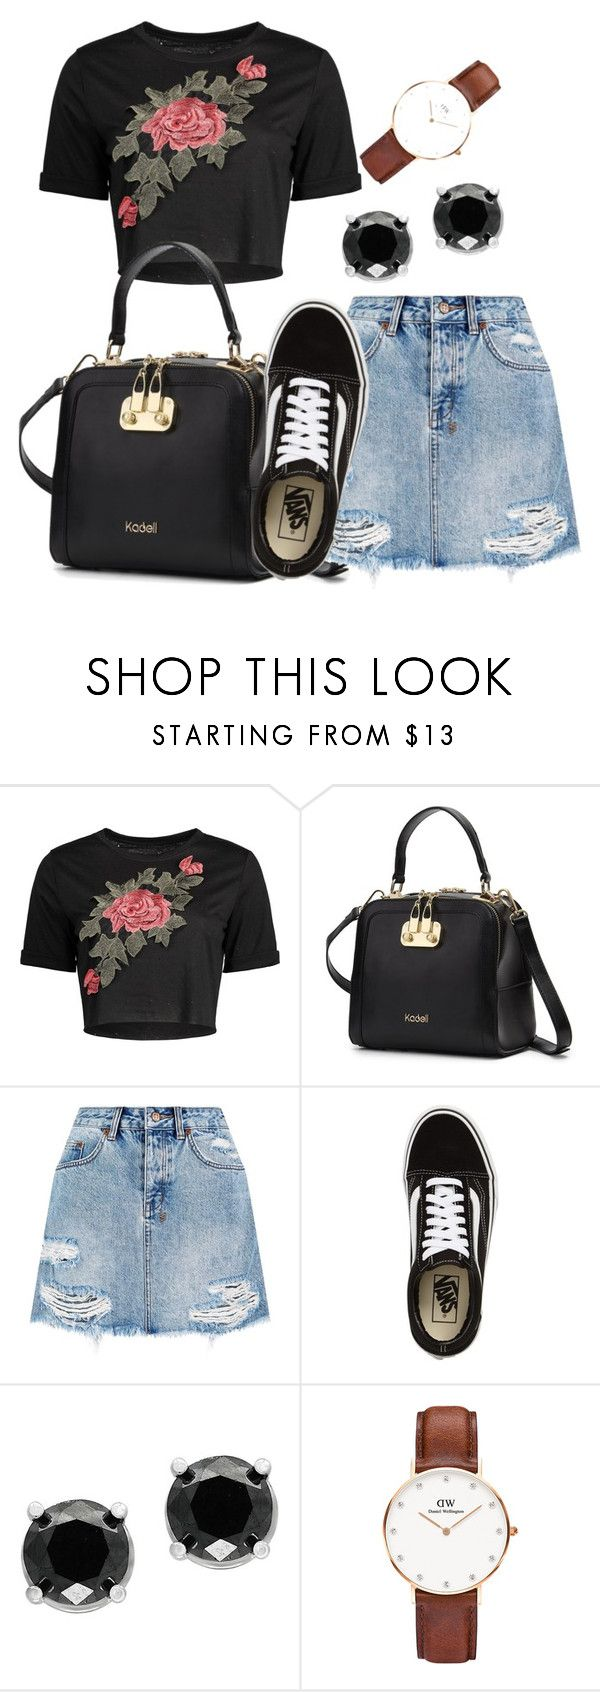 """""""Remi"""" by lucycouture17 on Polyvore featuring Ksubi, Vans, Effy Jewelry and Daniel Wellington"""